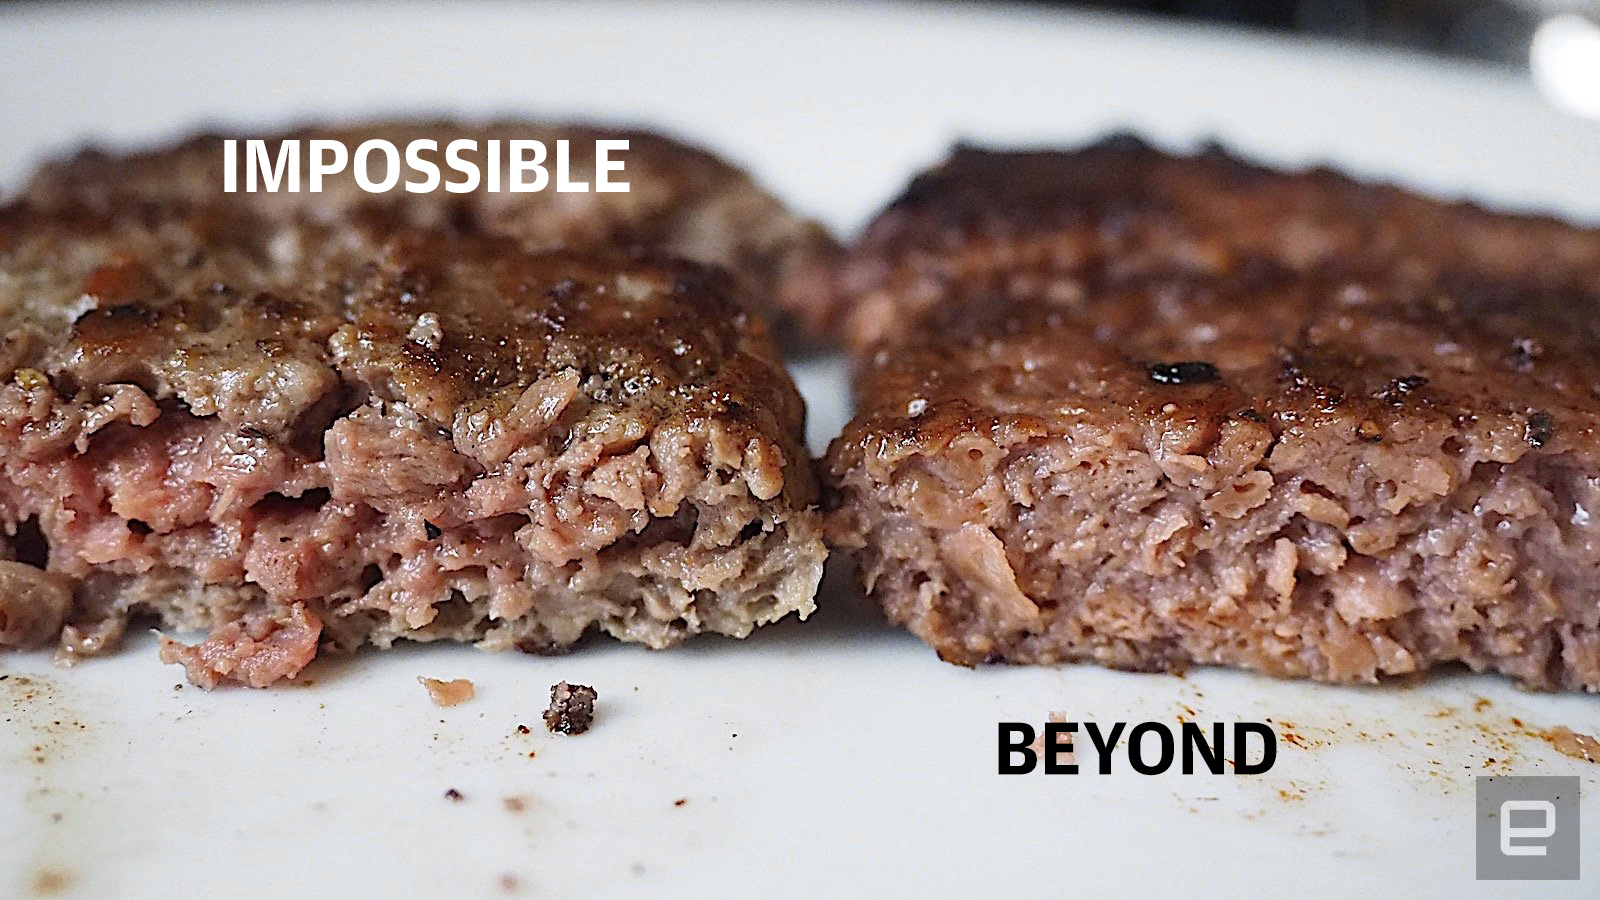 Impossible vs. Beyond